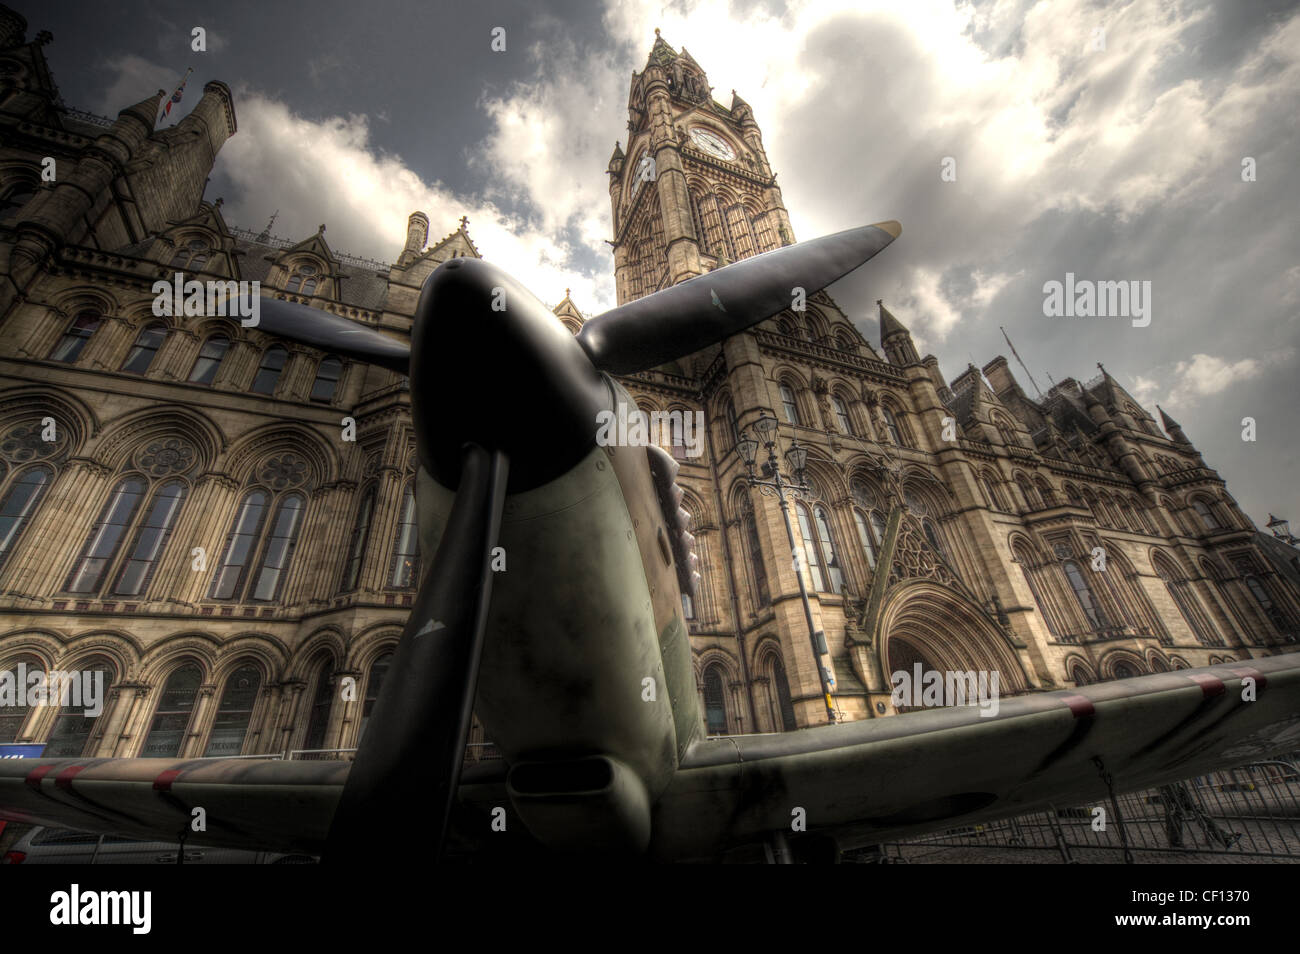 Spitfire aircraft in front of Manchester town hall,Albert Square,Lancashire,England,UK,gotonysmith,north,west,northwest,england,MOD,military,air,force,drama,best,dramatic,Manchester,Town,Hall,is,a,Victorian-era,Neo-gothic municipal building in Manchester England building,Manchester Town Hall is a Victorian-era,Neo-gothic municipal building in Manchester,England.,The,building,functions,as,the,ceremonial,headquarters,of,Manchester,City,Council,and,houses,a,number,of,local,government,departments.,Designed,by,architect,Alfred,Waterhouse,the,town,hall,was,completed,in,1877.,The,building,occupies,a,triangular,site,facing,Albert,Square,and,contains,offices,and,grand,ceremonial,rooms,such,as,the,Great,Hall,which,is,decorated,with,the,imposing,Manchester,Murals,by,Ford,Madox,Brown,illustrating,the,history,of,the,city.,The,entrance,and,Sculpture,Hall,contain,busts,and,statues,of,influential,figures,including,Dalton,Joule,and,Barbirolli.,The,exterior,is,dominated,by,the,clock,tower,which,rises,to,87,metres,(285,feet),and,houses,Great,Abel,the clock bell.,gotonysmith,Buy Pictures of,Buy Images Of